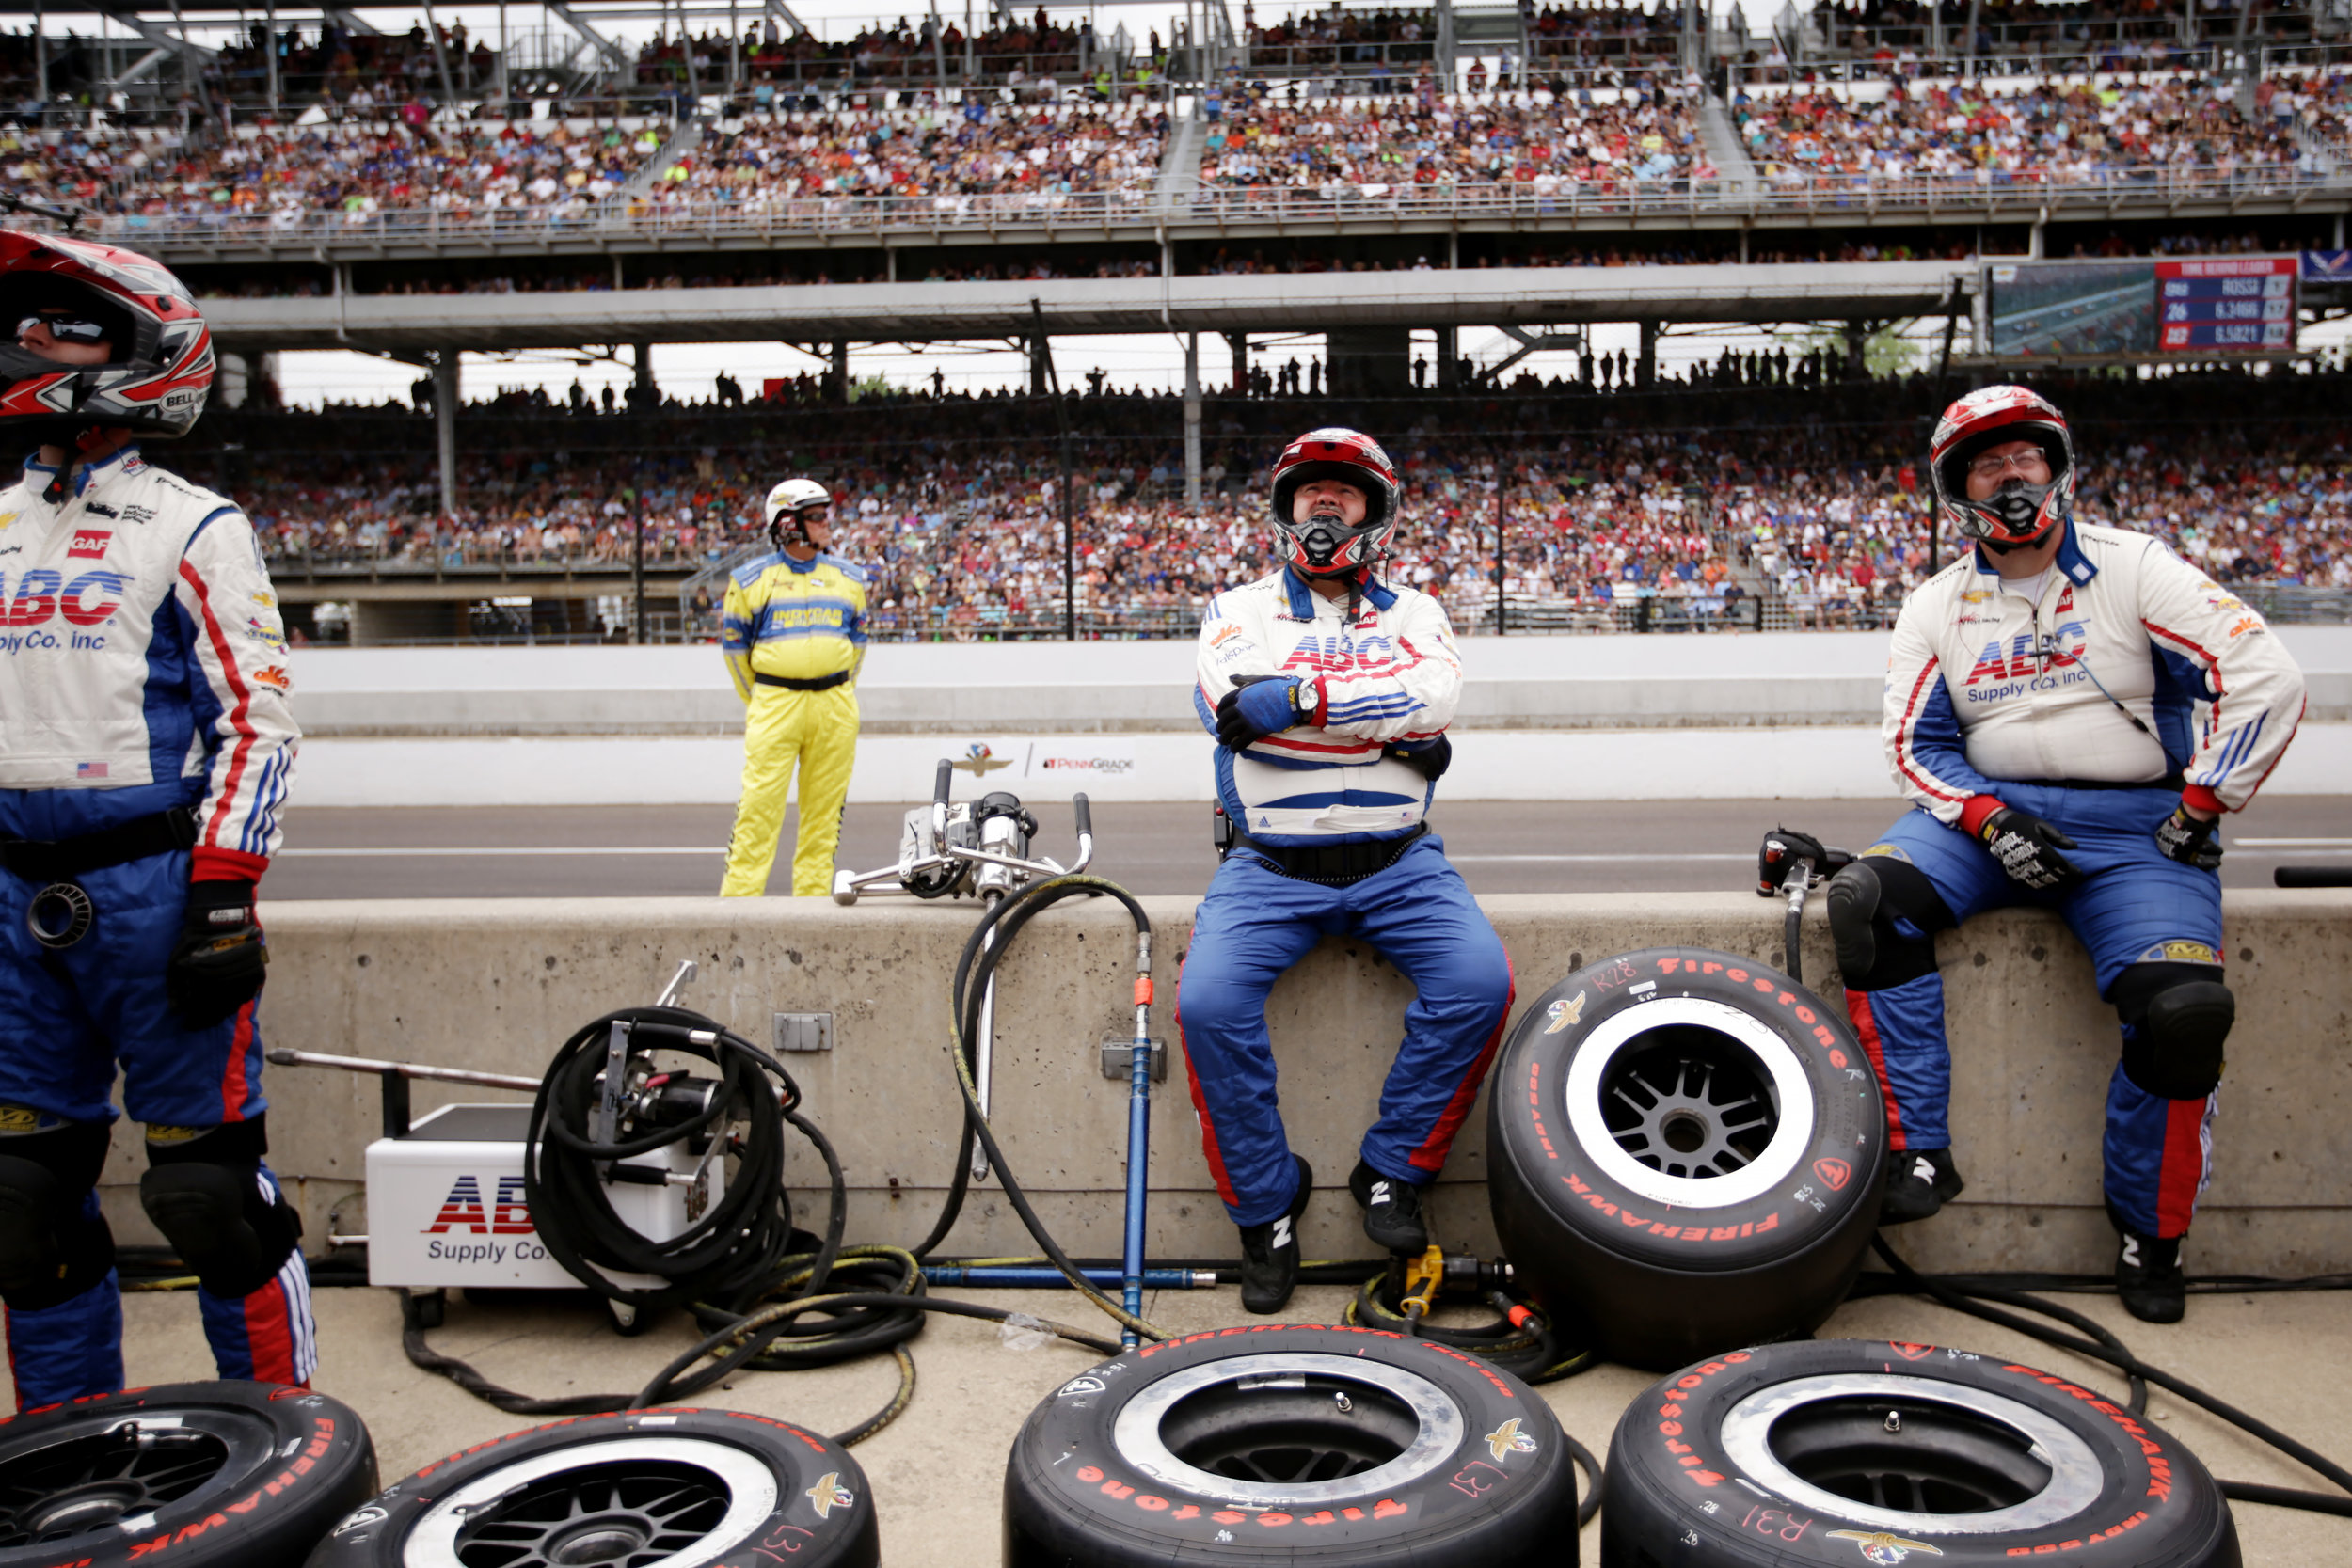 An IndyCar driver's pit crew watches the big screen as the cars move through Turns 2, 3, and 4.